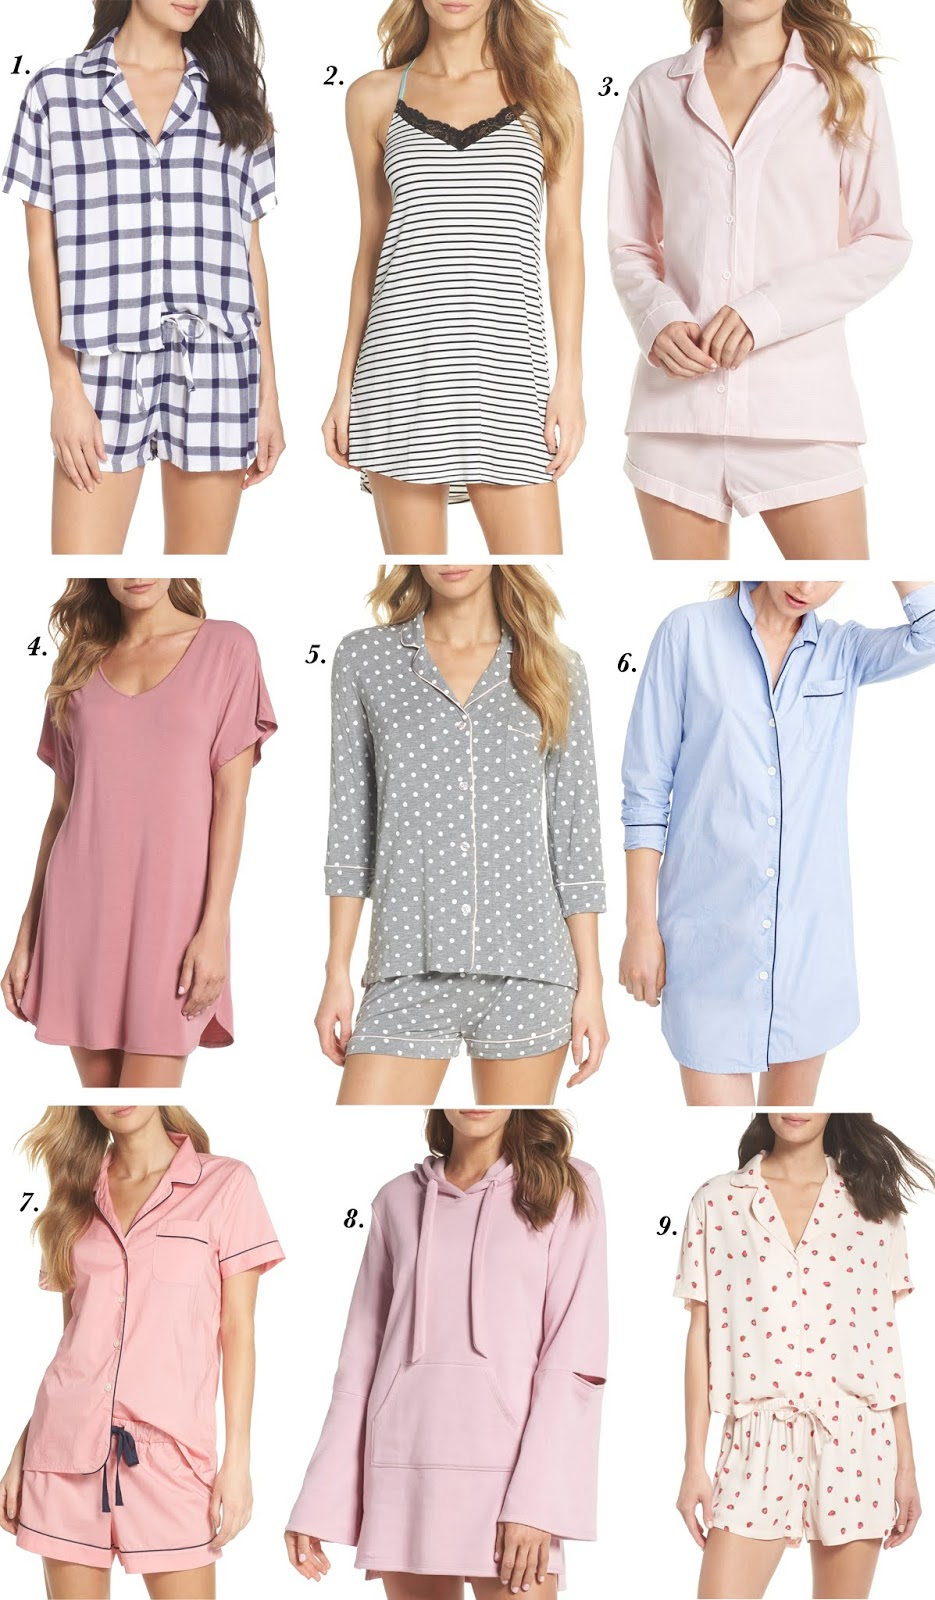 2018 Nordstrom Anniversary Sale: Pajamas - Something Delightful Blog